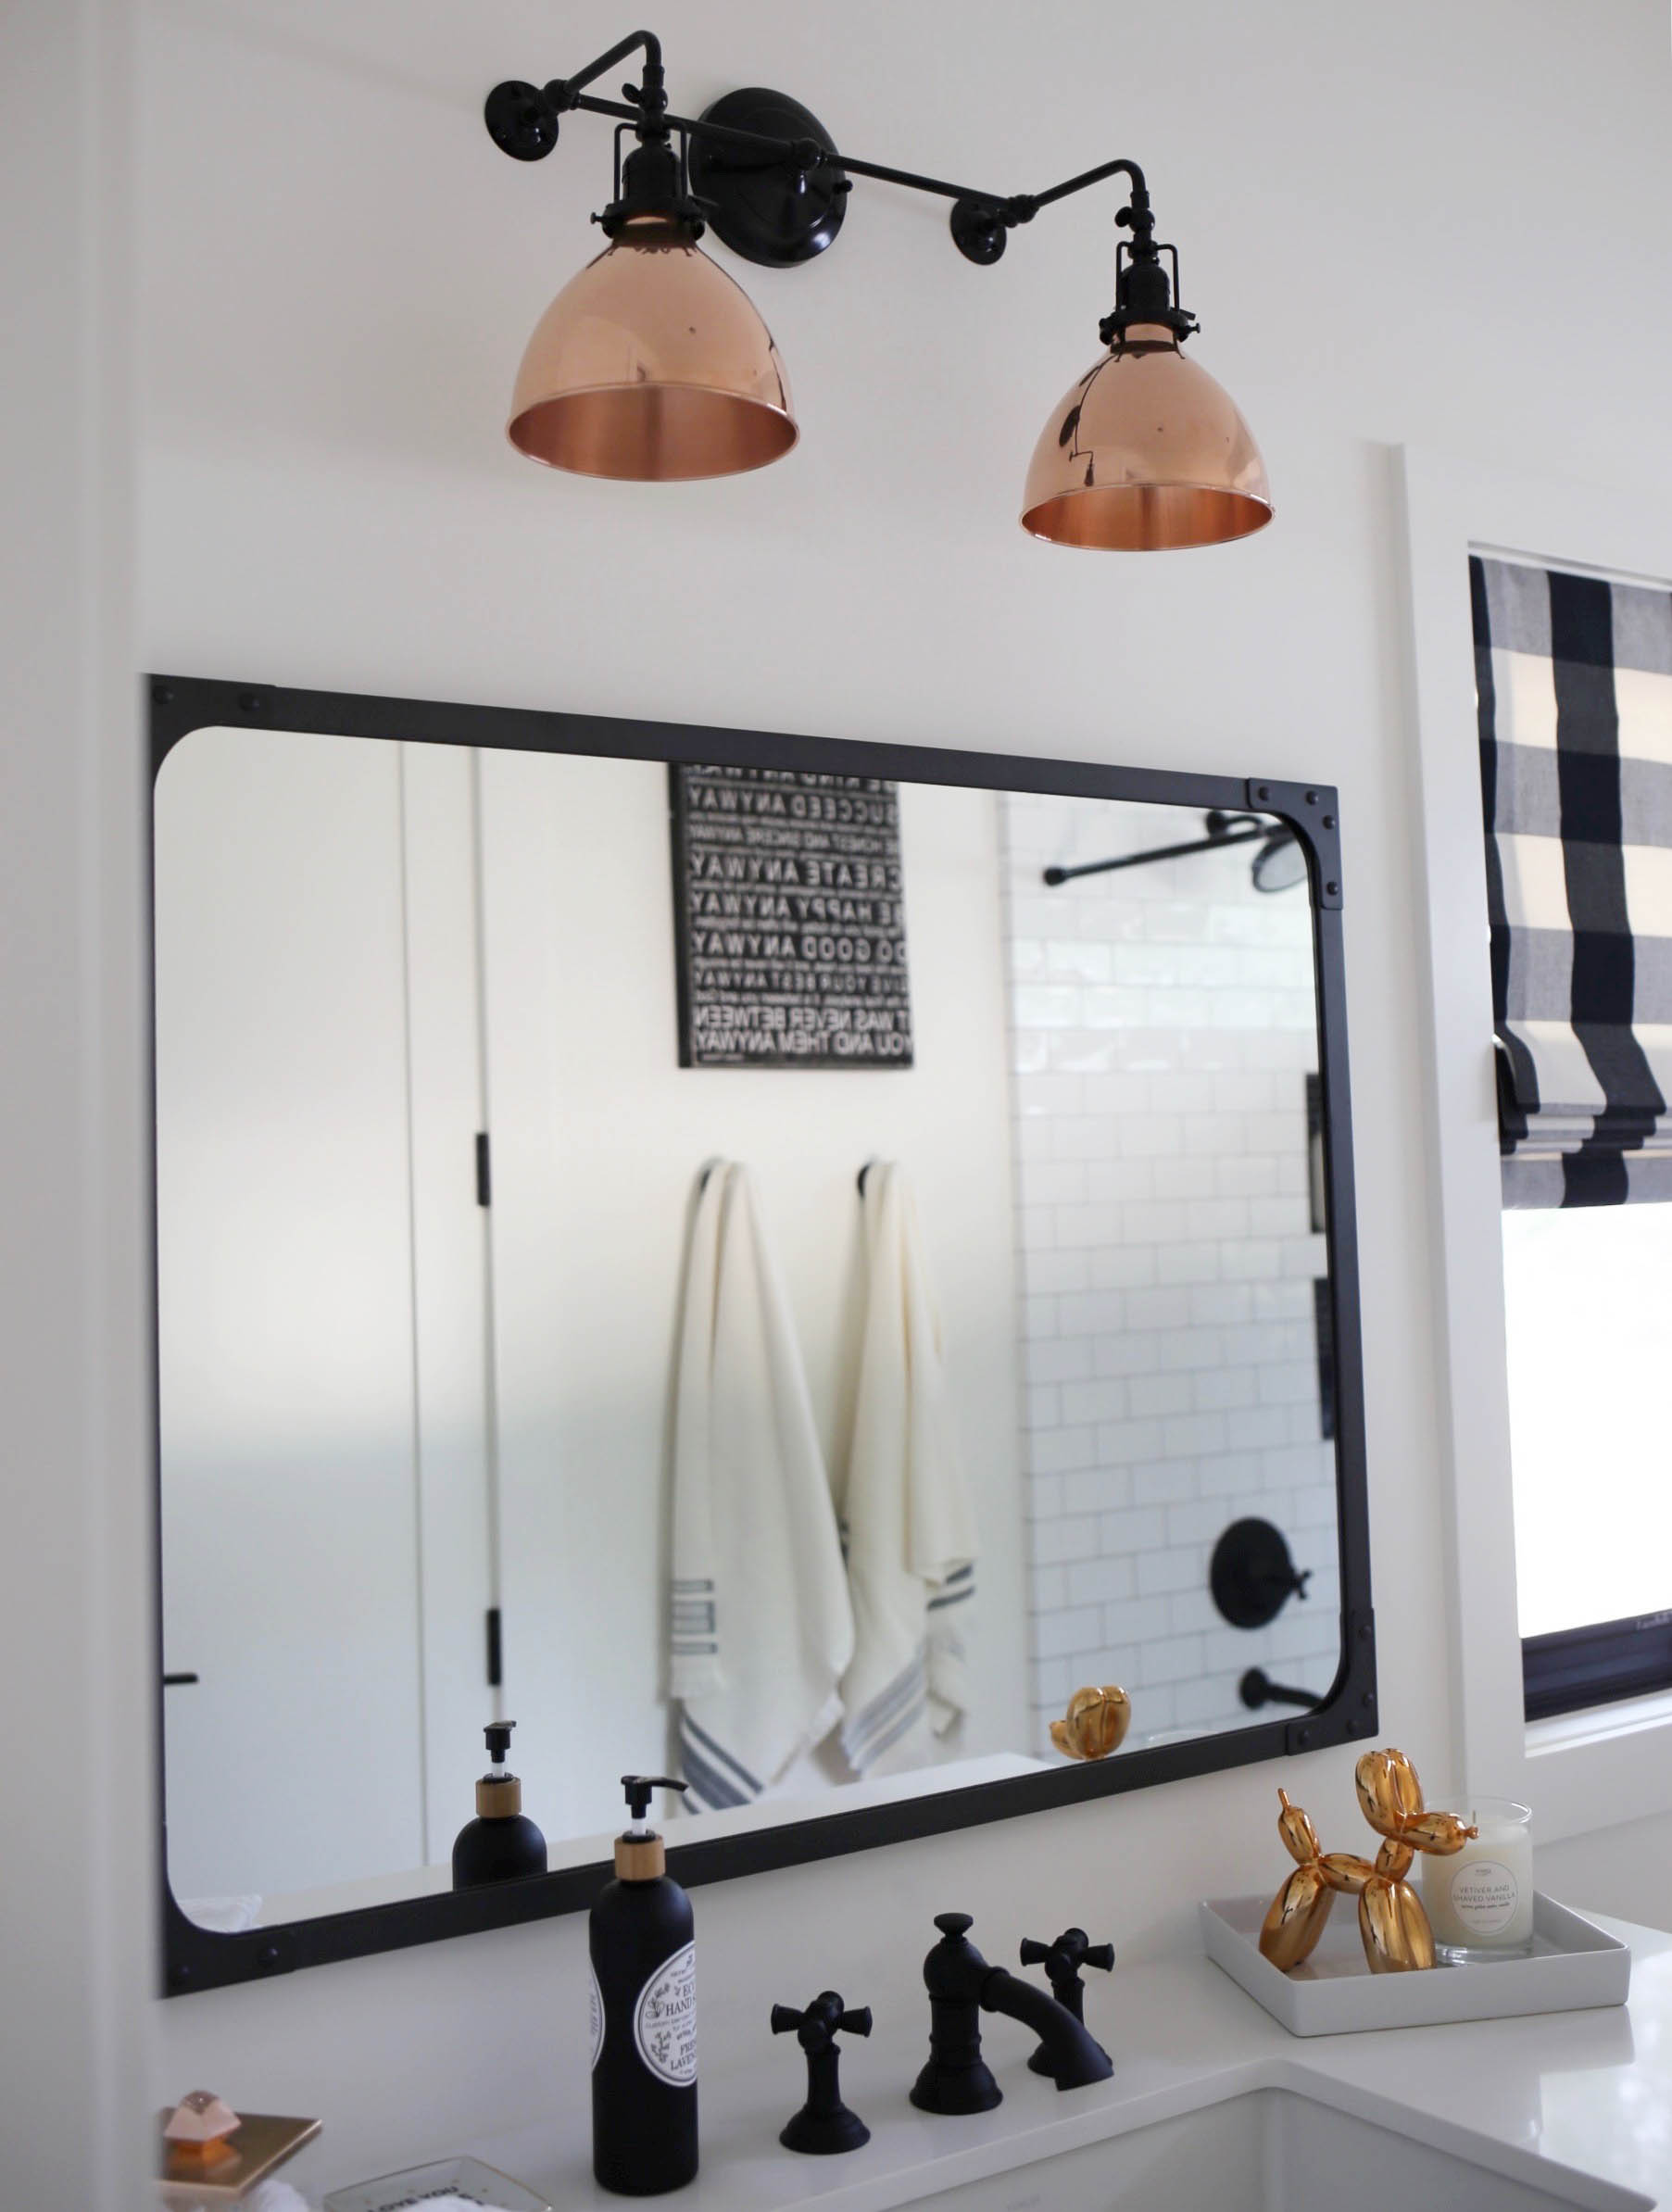 subway tile Archives - Styled By Kasey